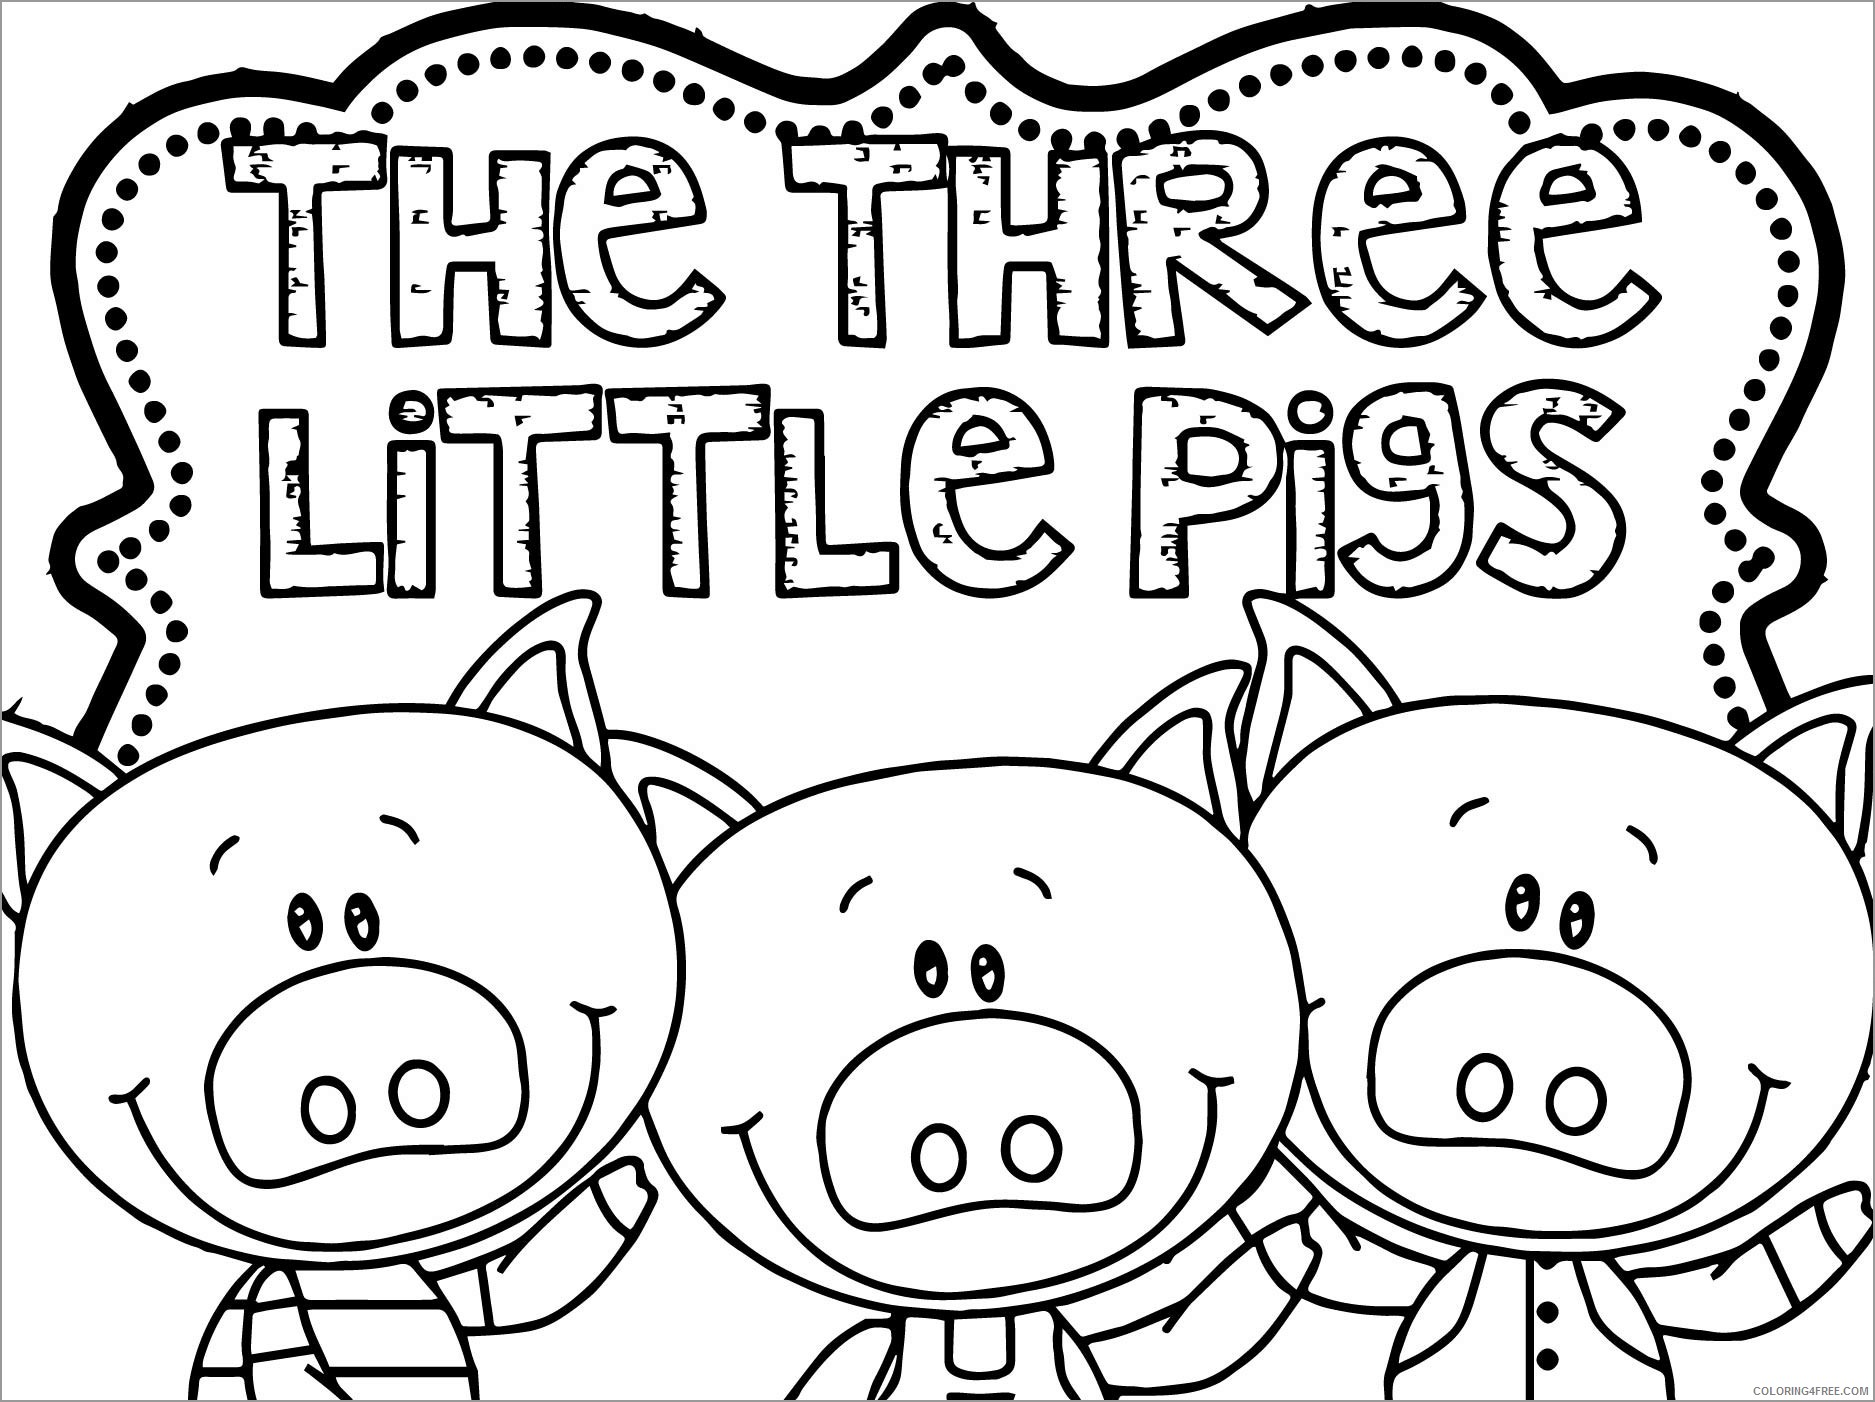 Three Little Pigs Coloring Pages Cartoons the three little pigs unsmushed  Printable 2020 6567 Coloring4free - Coloring4Free.com